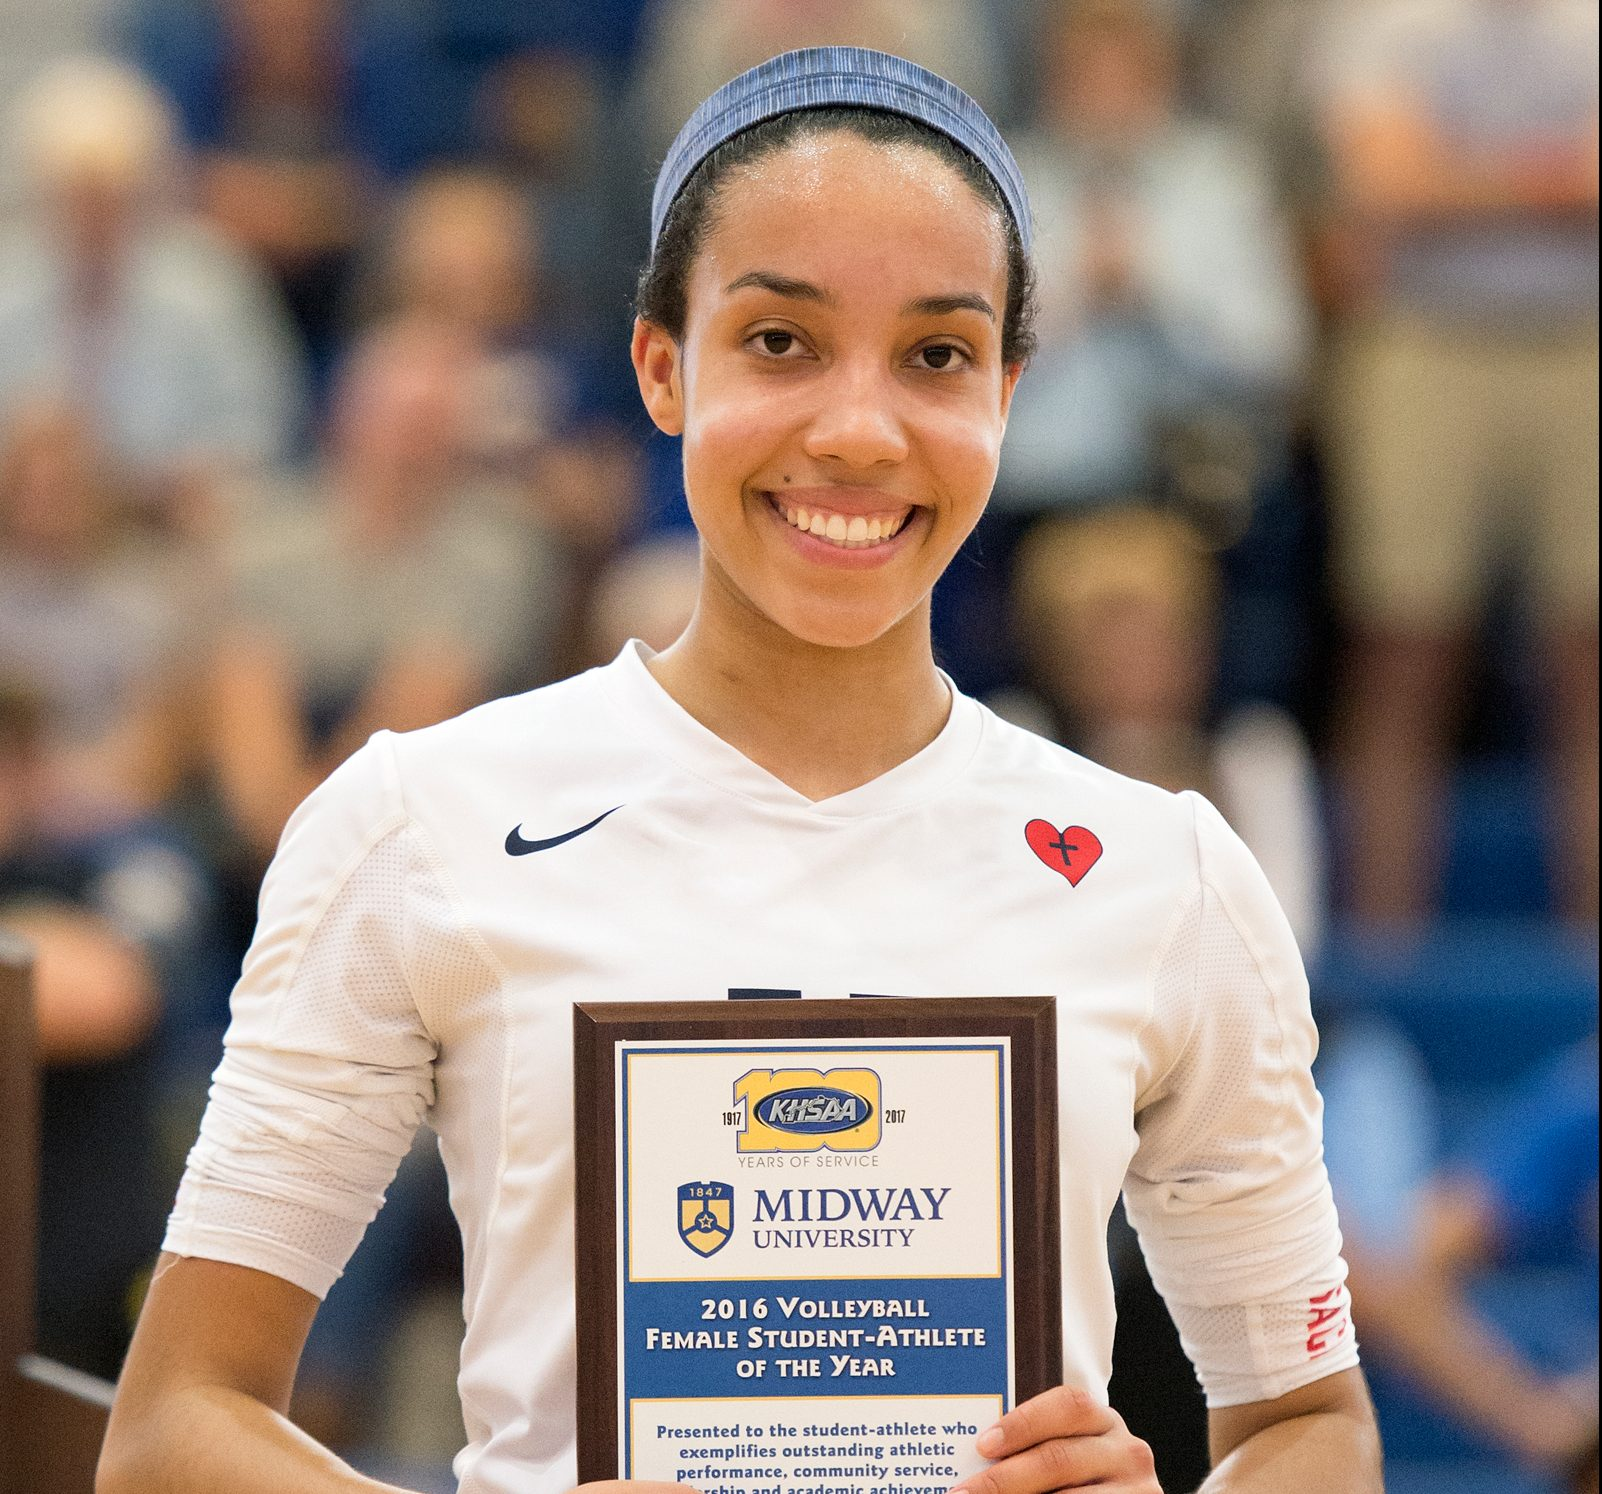 Sacred Heart Senior Wins Midway University/KHSAA Female Student-Athlete of the Year Award